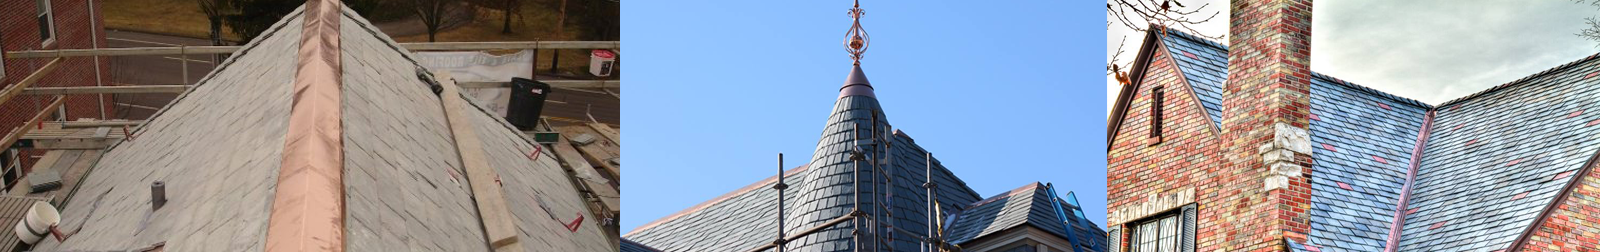 St Louis Roofing Contractor About Innovative